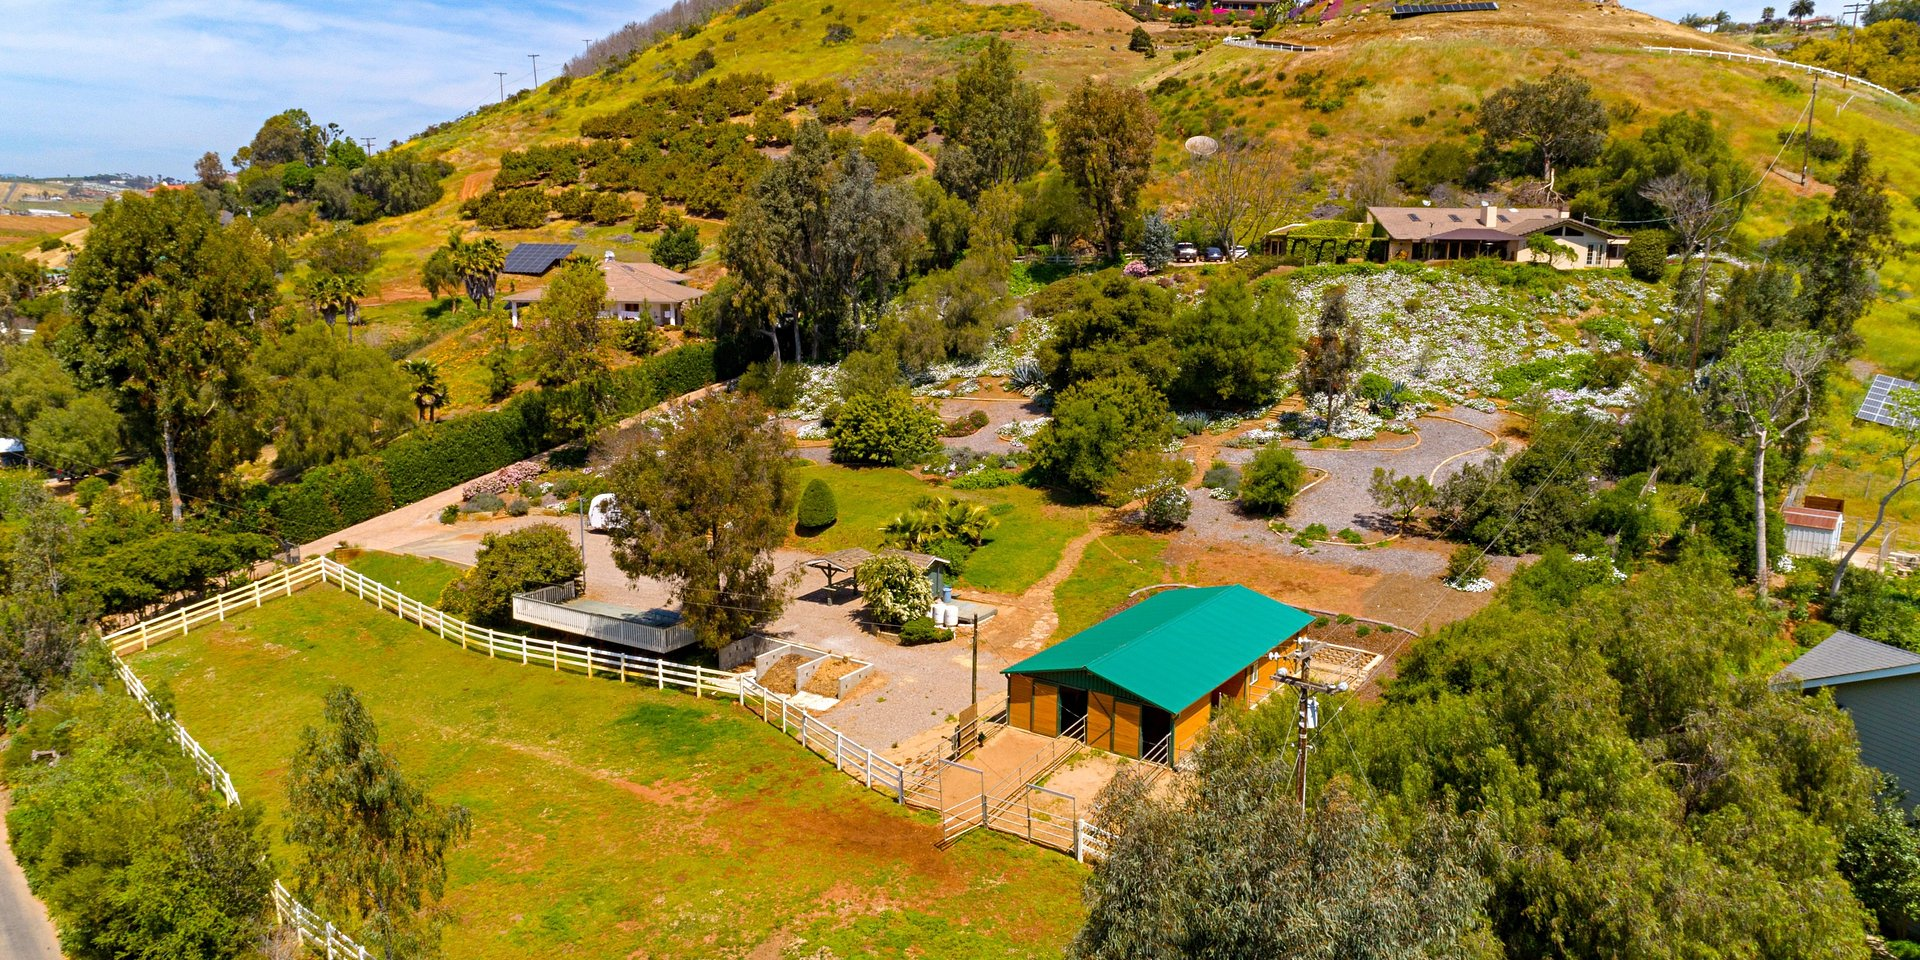 Coldwell Banker Residential Brokerage Lists Equestrian Vista Property for $1,377,700